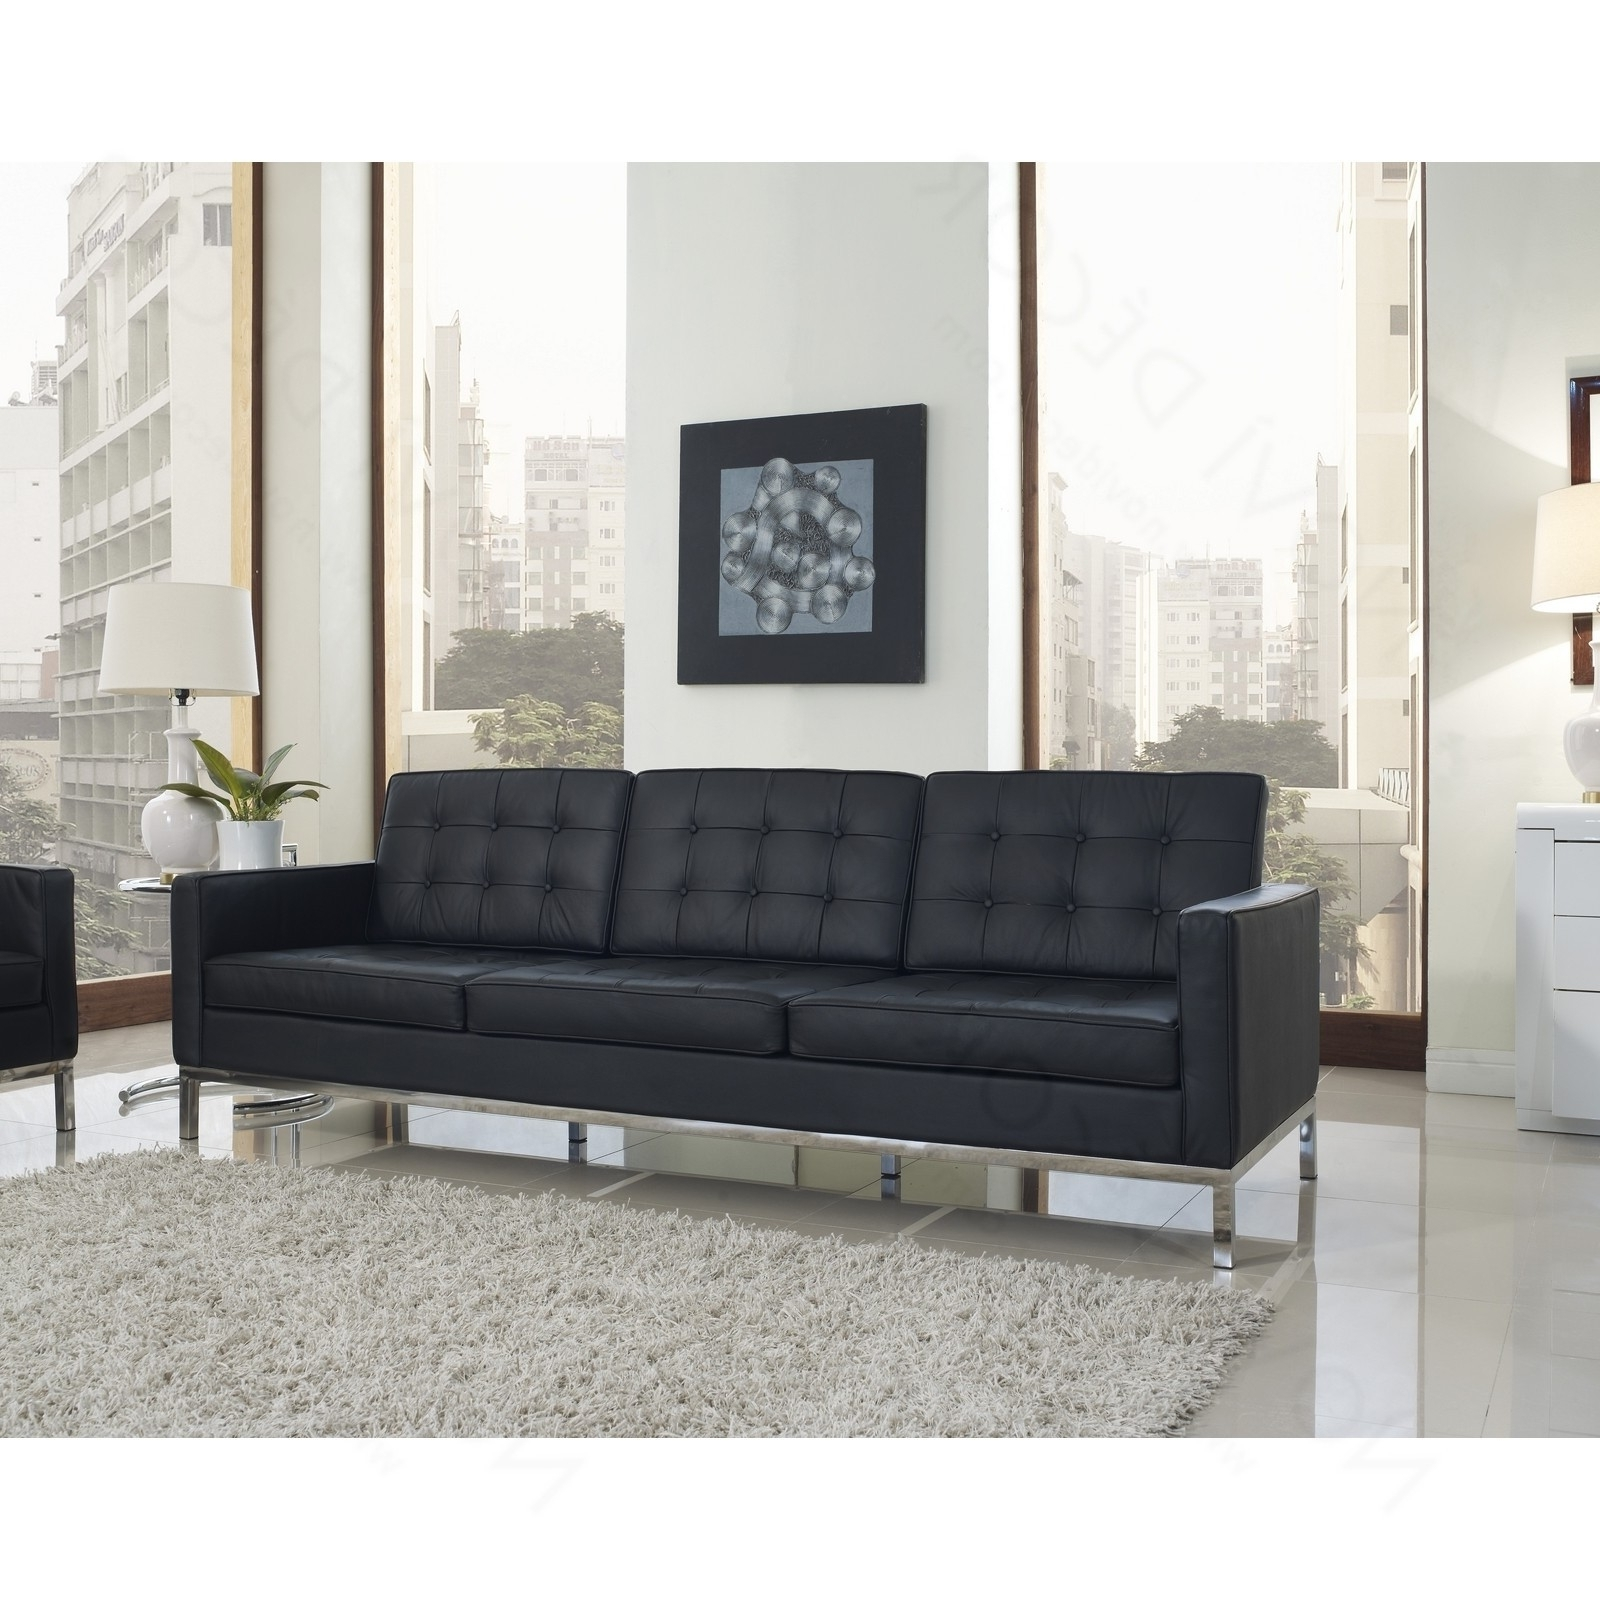 Trendy Florence Knoll Leather Sofas With Florence Knoll Ledersofa – Dreisitzer Sofa Einrichtung Für Das (View 13 of 20)